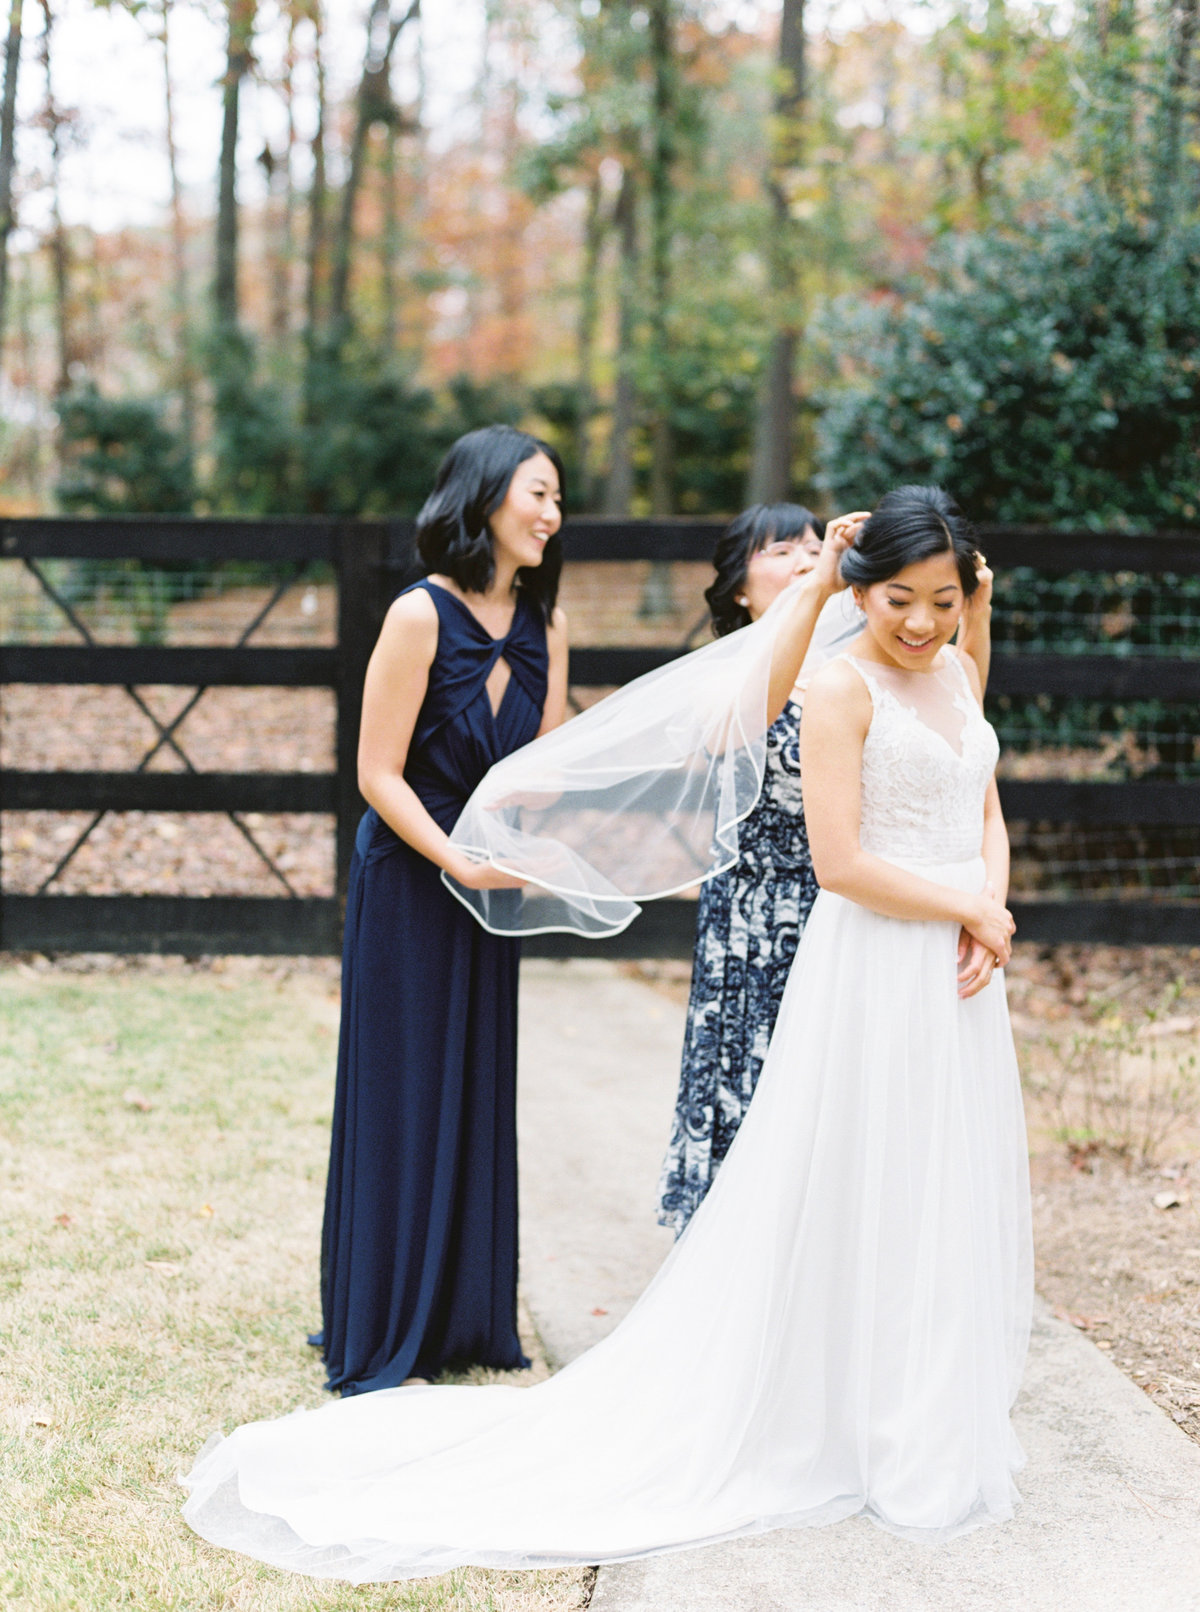 Helena + Sunny Rocky's Lake Estate Wedding - Cassie Valente Photography 0081